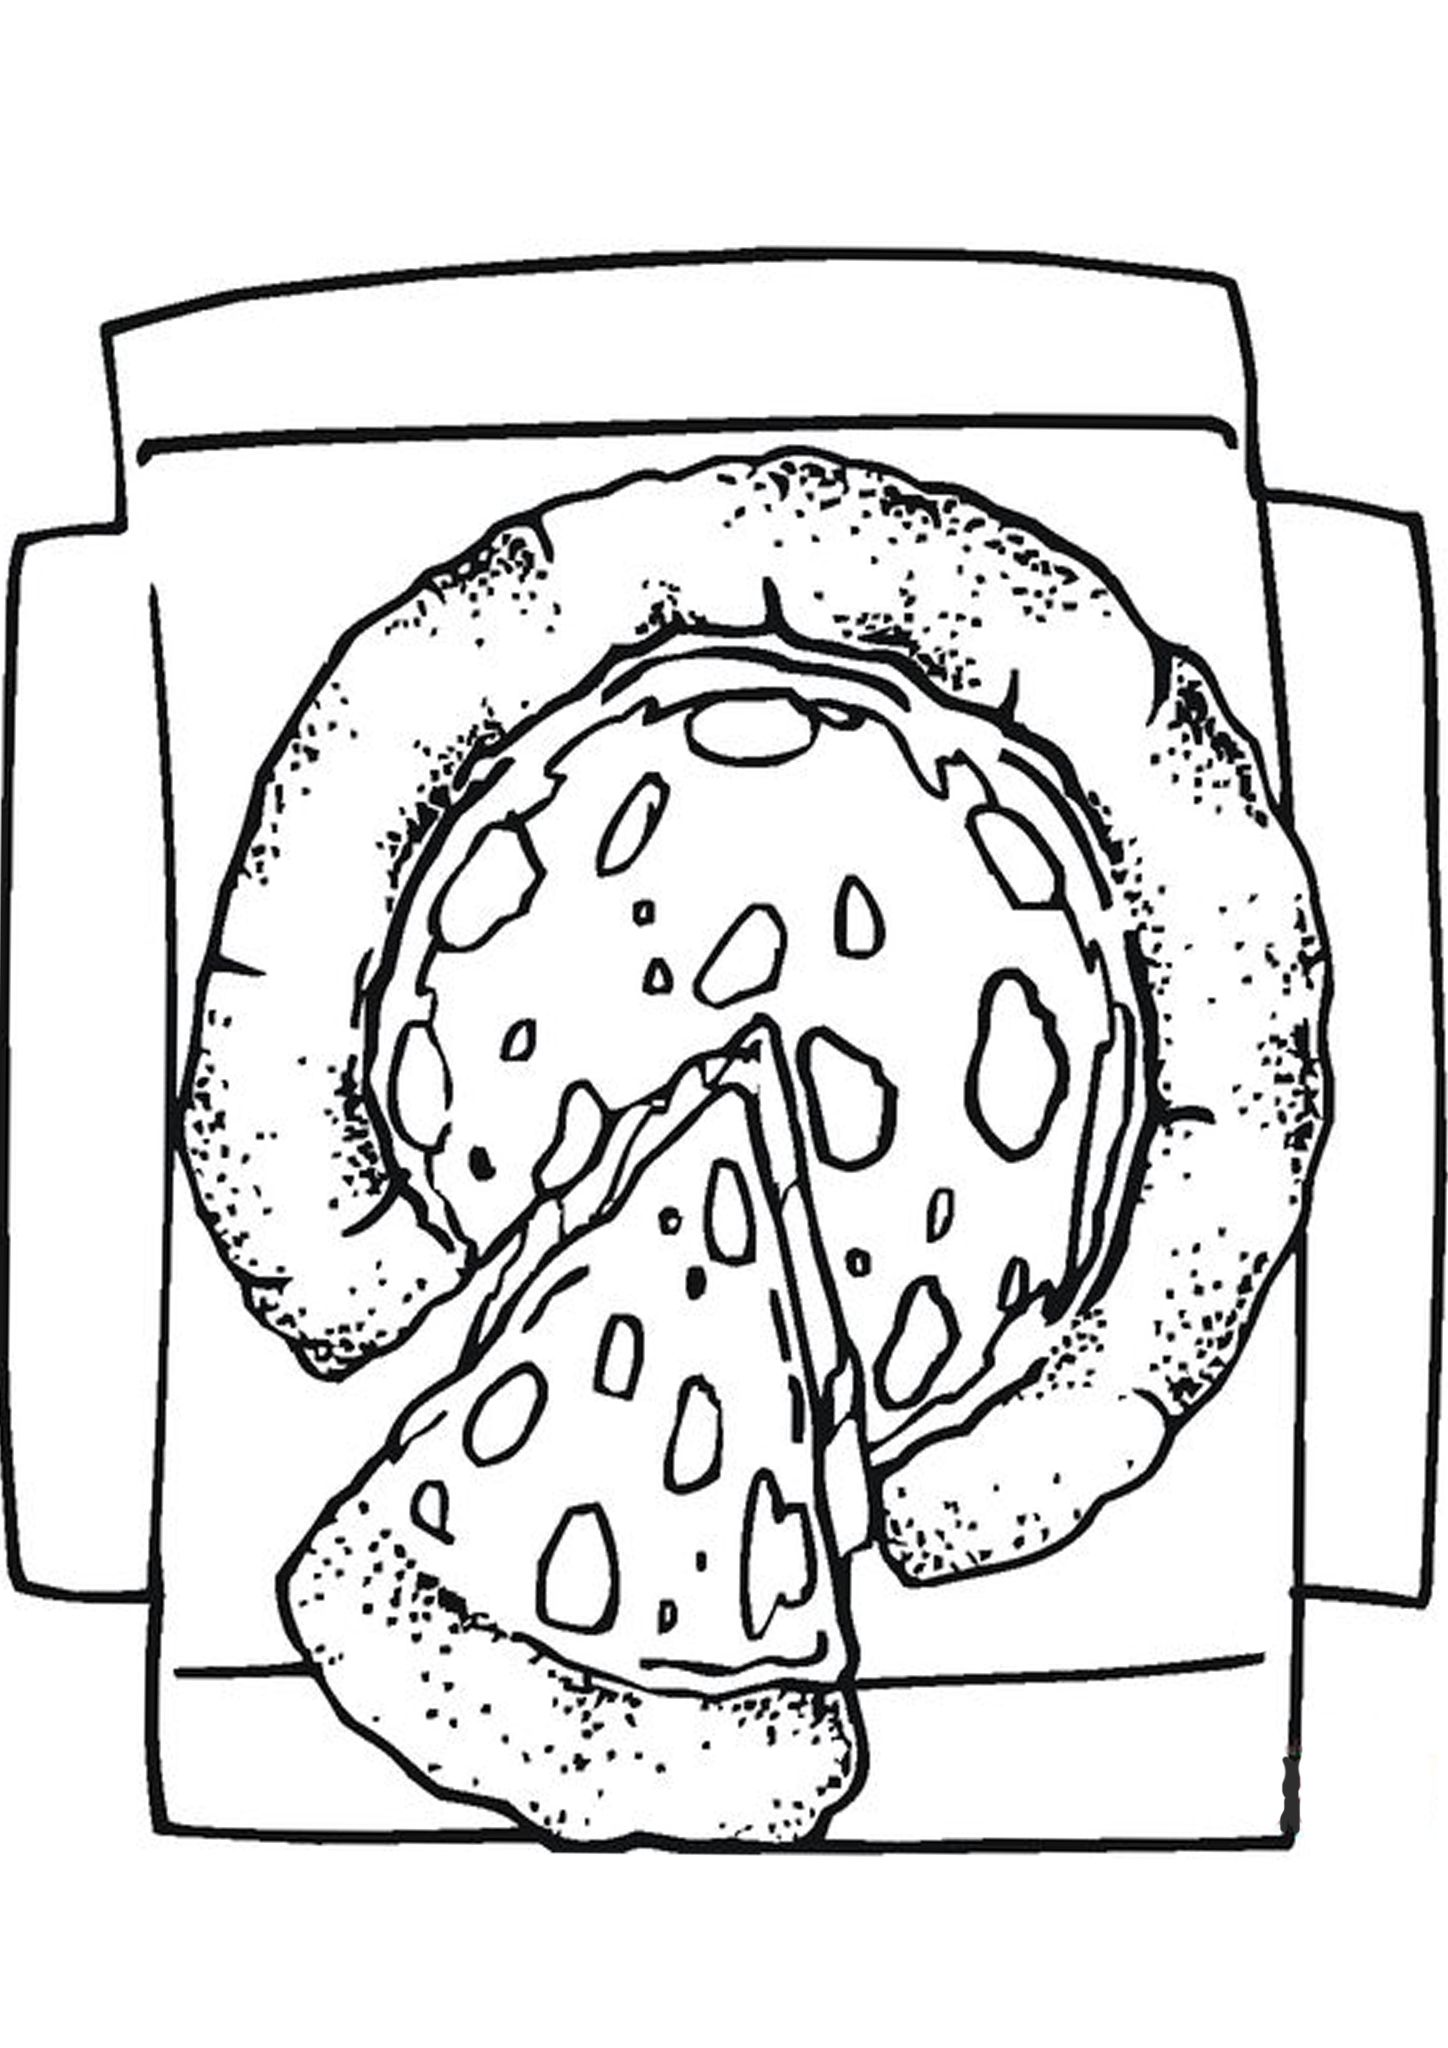 Free Easy To Print Pizza Coloring Pages In 2020 Pizza Coloring Page Coloring Pages For Kids Coloring Pages